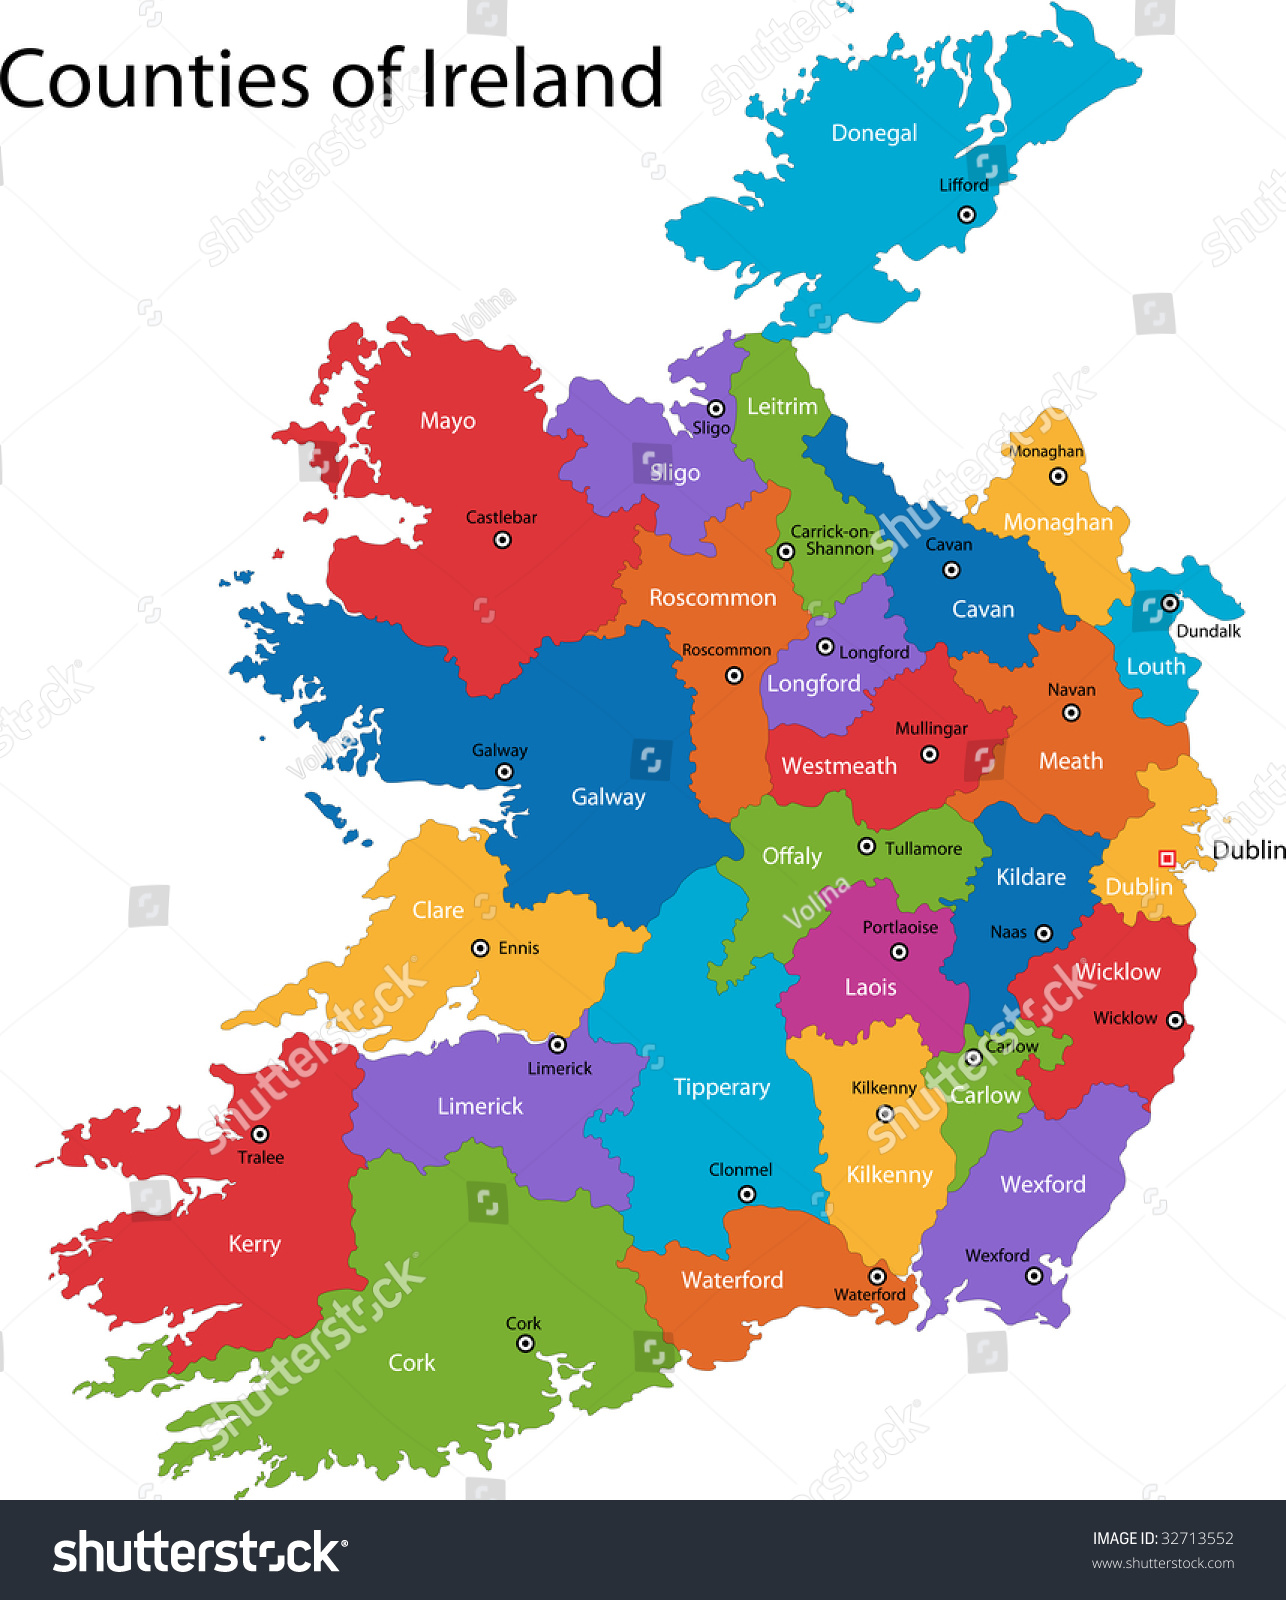 Map Of Ireland With Counties And Towns.Ireland Map Towns